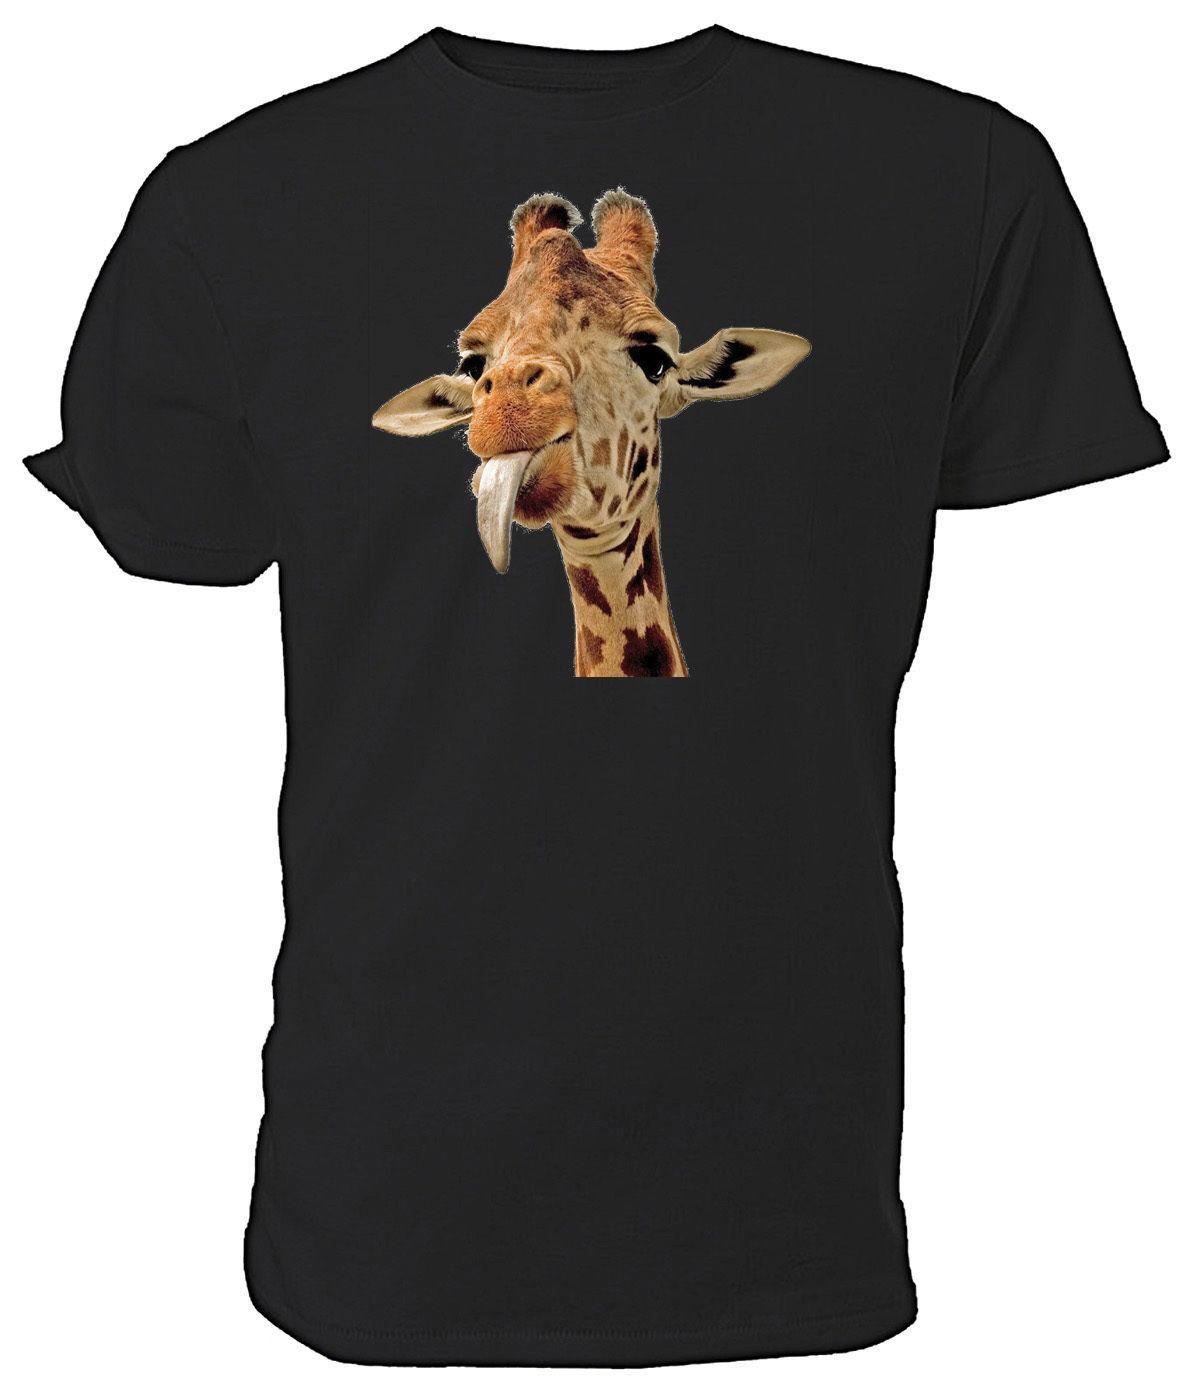 382548bdc5 Cheeky Giraffe T shirt - Choice of size & colours. Youth Round Collar  Customized T-Shirts Solid Color Fashion T Shirt Brand